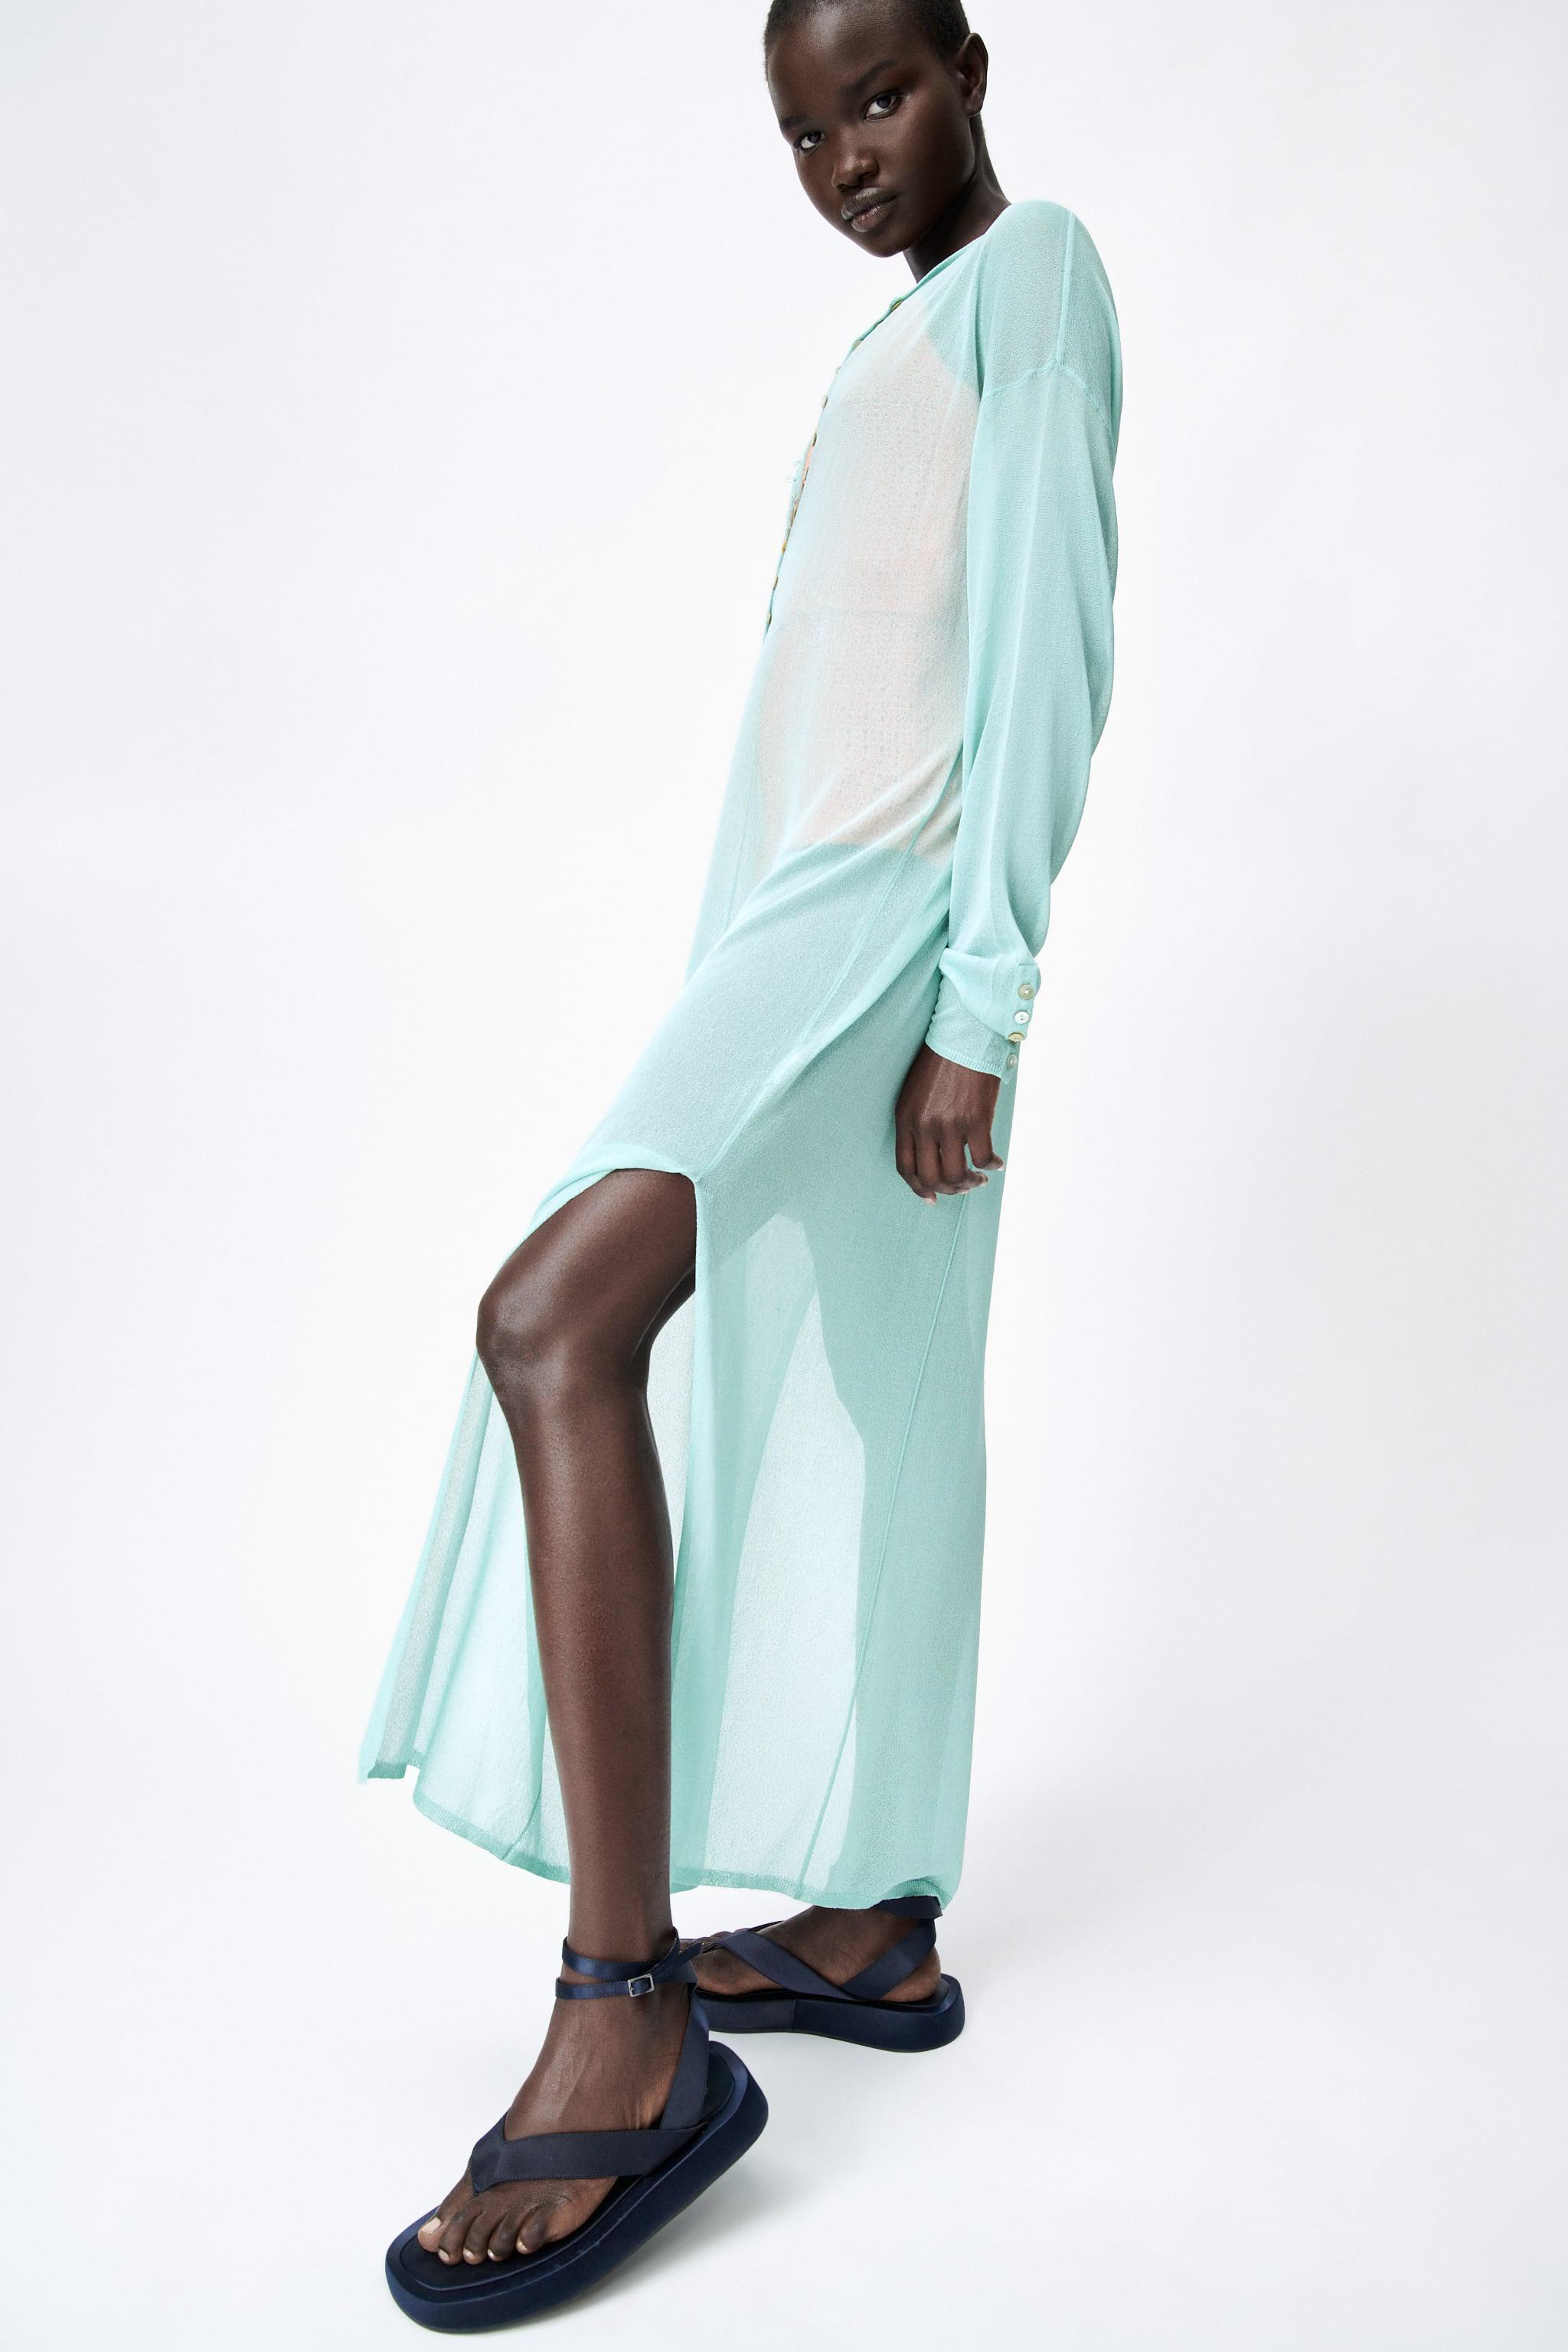 SEMI-SHEER KNIT TUNIC LIMITED EDITION 4